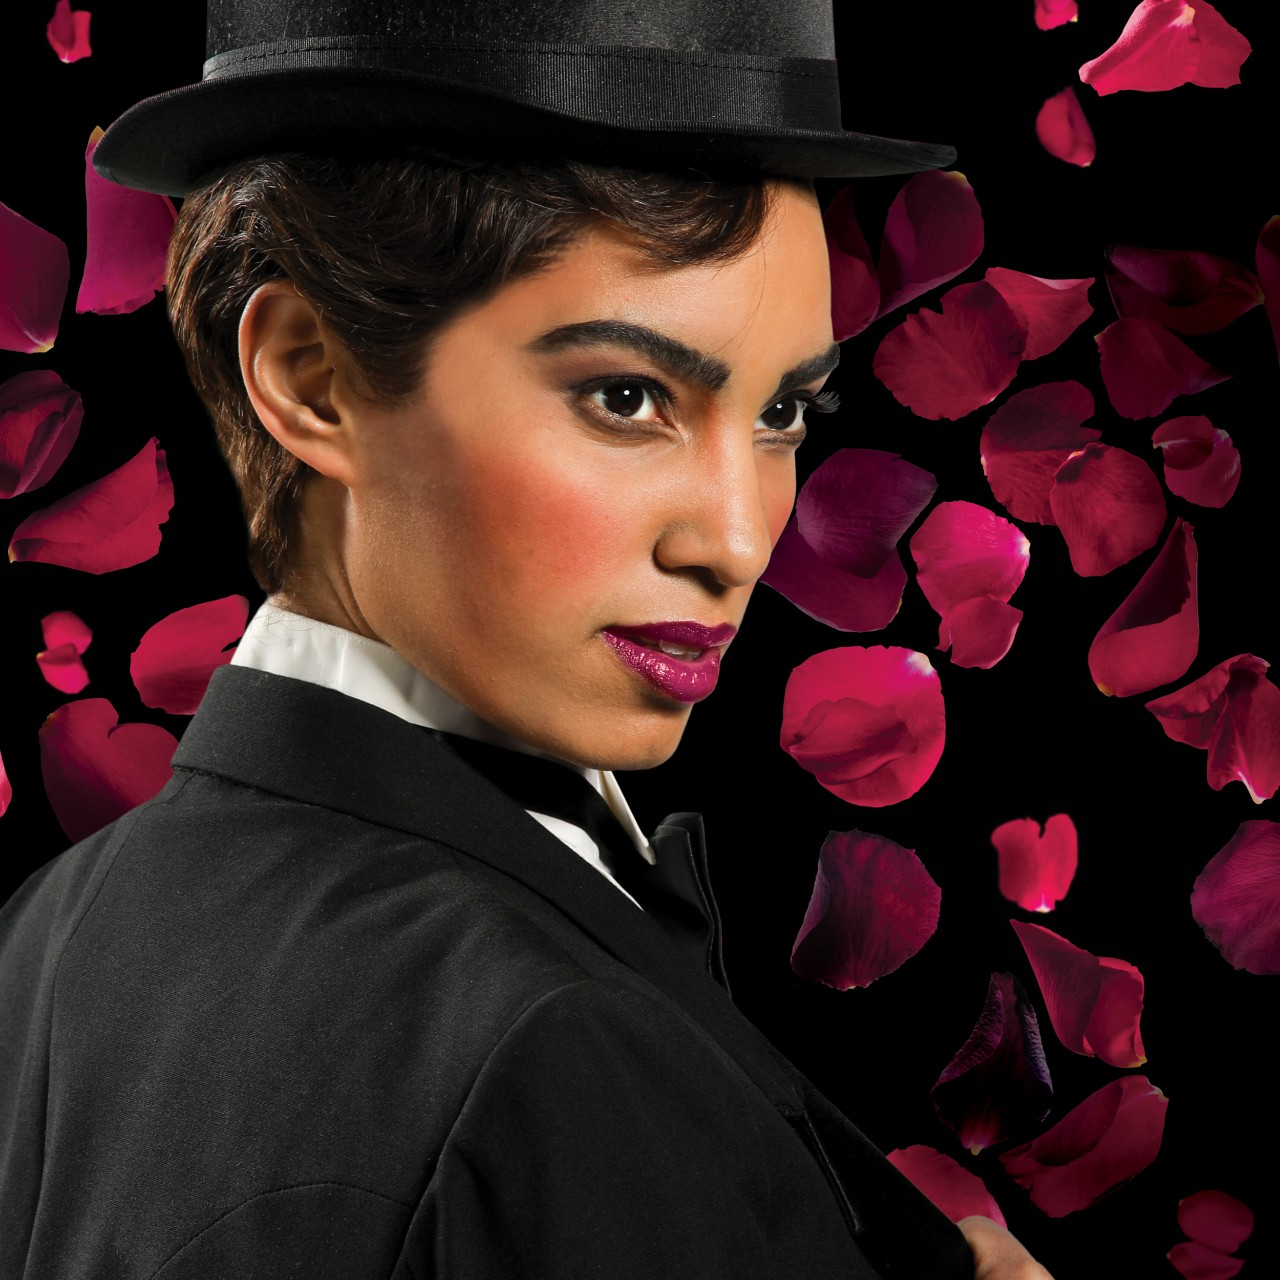 A woman wears a suit and top hat in a promotional image for the opera 'Partenope.' Photo by Mark Lyons.